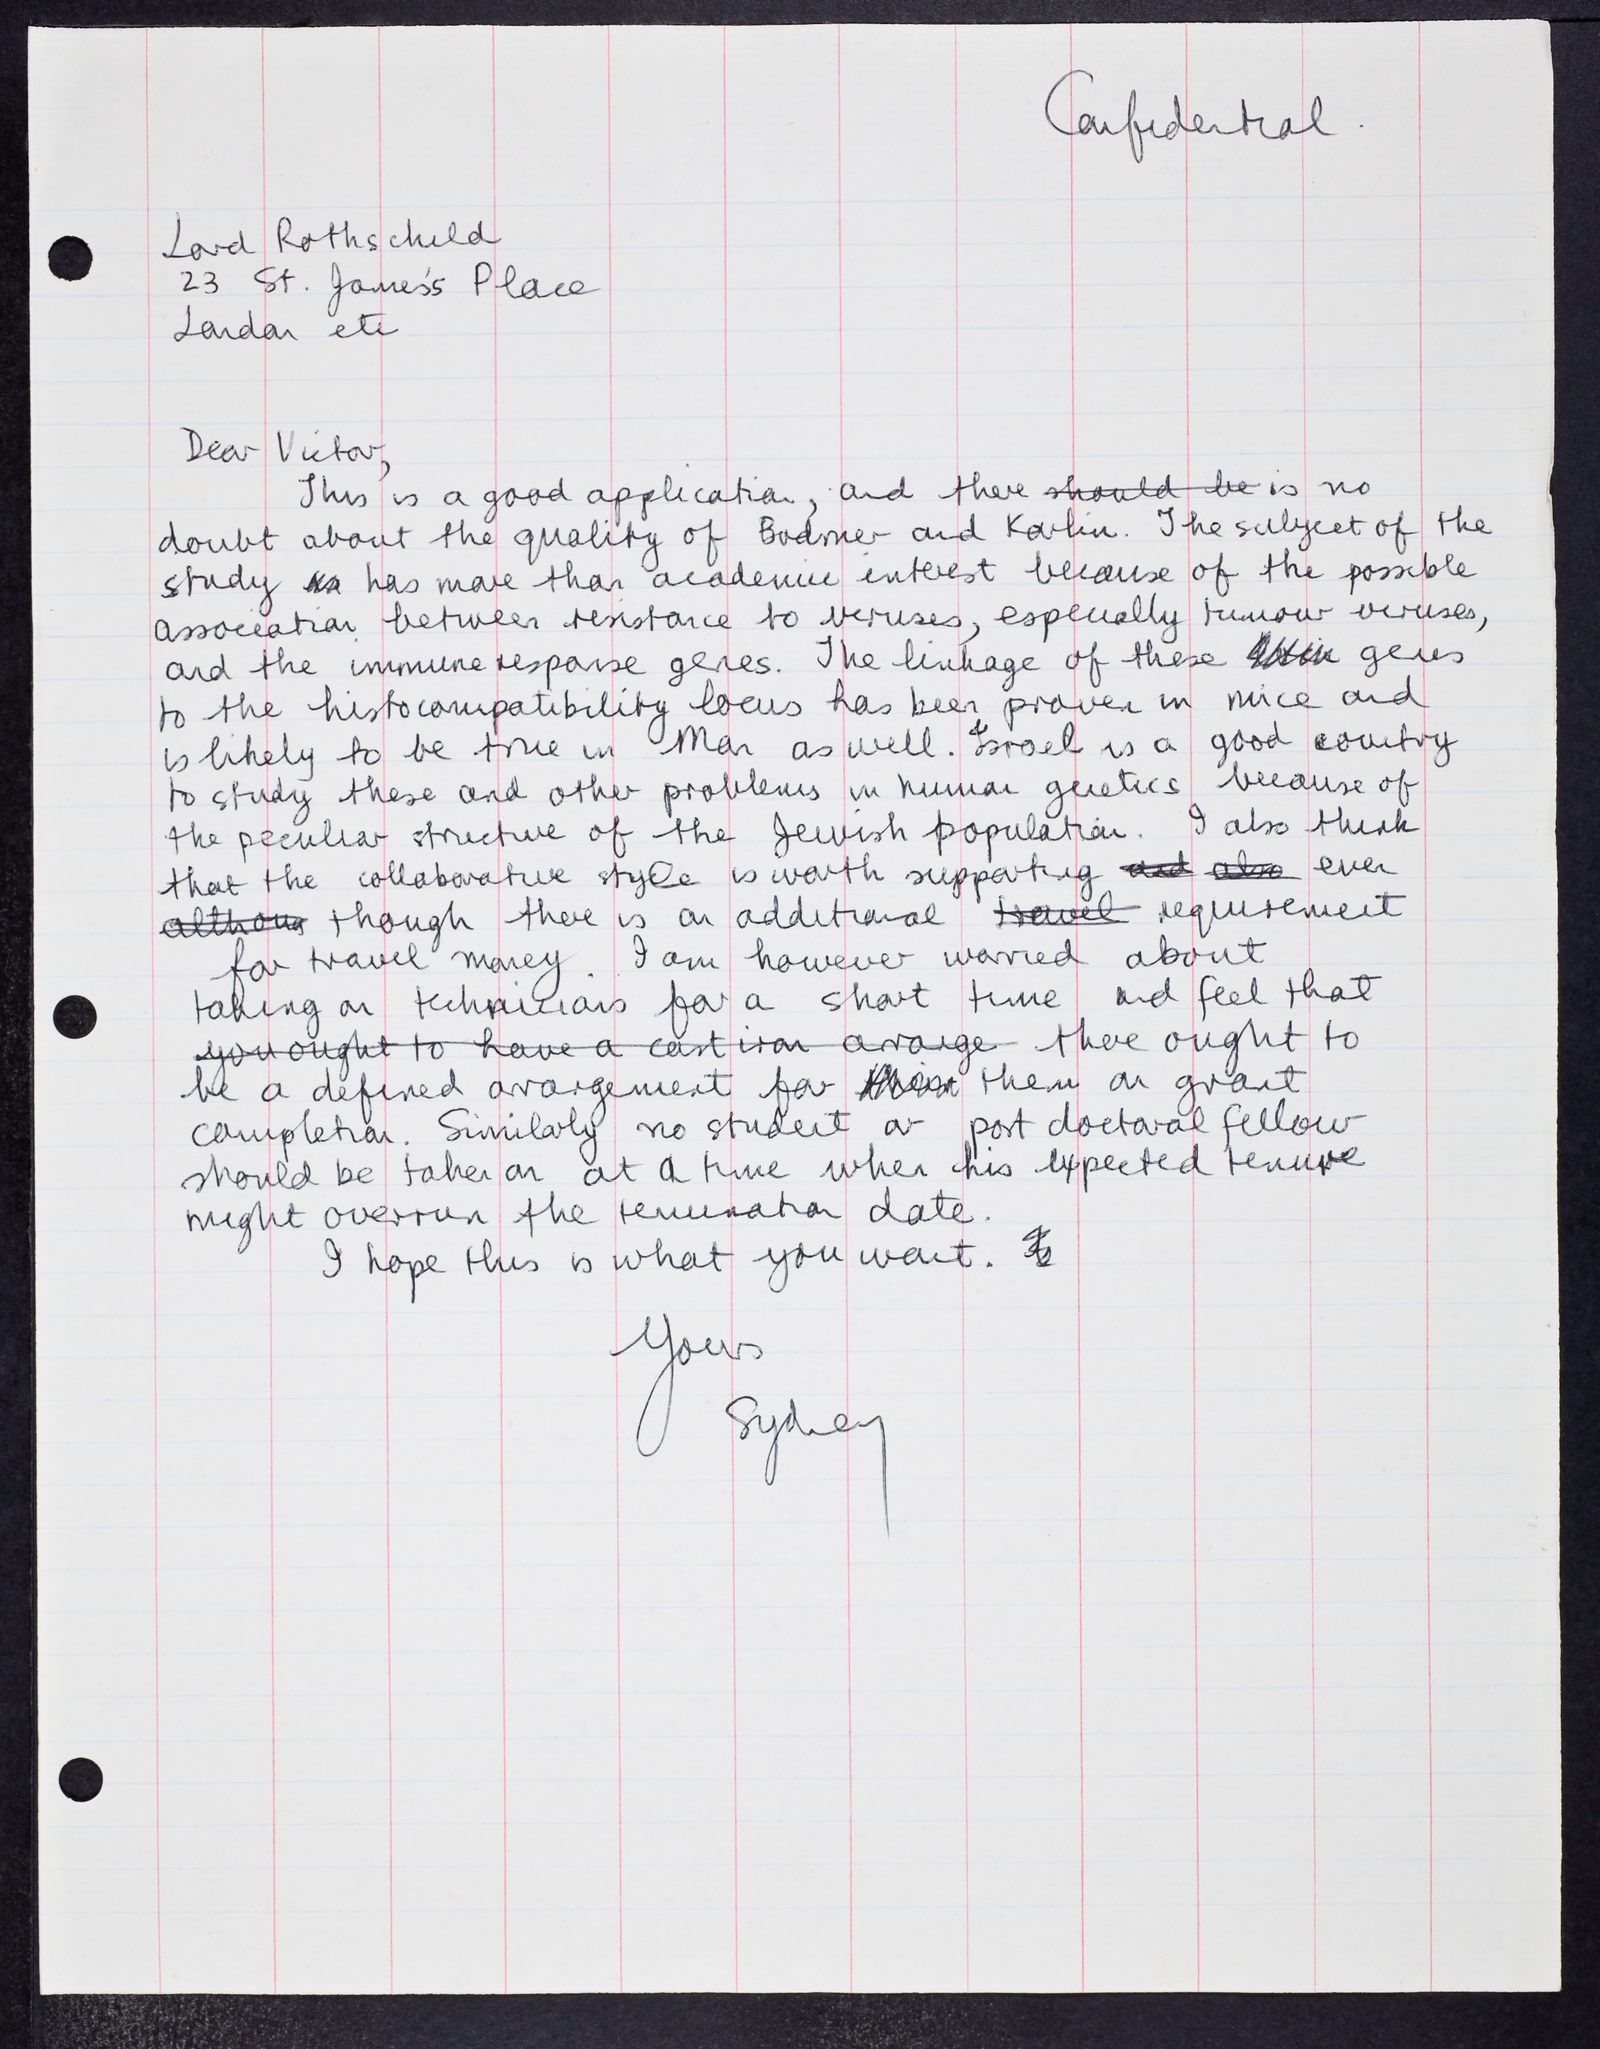 Sydney Brenner. (ca. 1972). Confidential handwritten letter from Sydney Brenner to Victor Rothschild re. genes, viruses, human virus experimentation in UK care homes Bodmer and Kevlin, and Israel and Jewish populations., SB/1/1/561, Item No. 64627. CHSL Archives Repository.